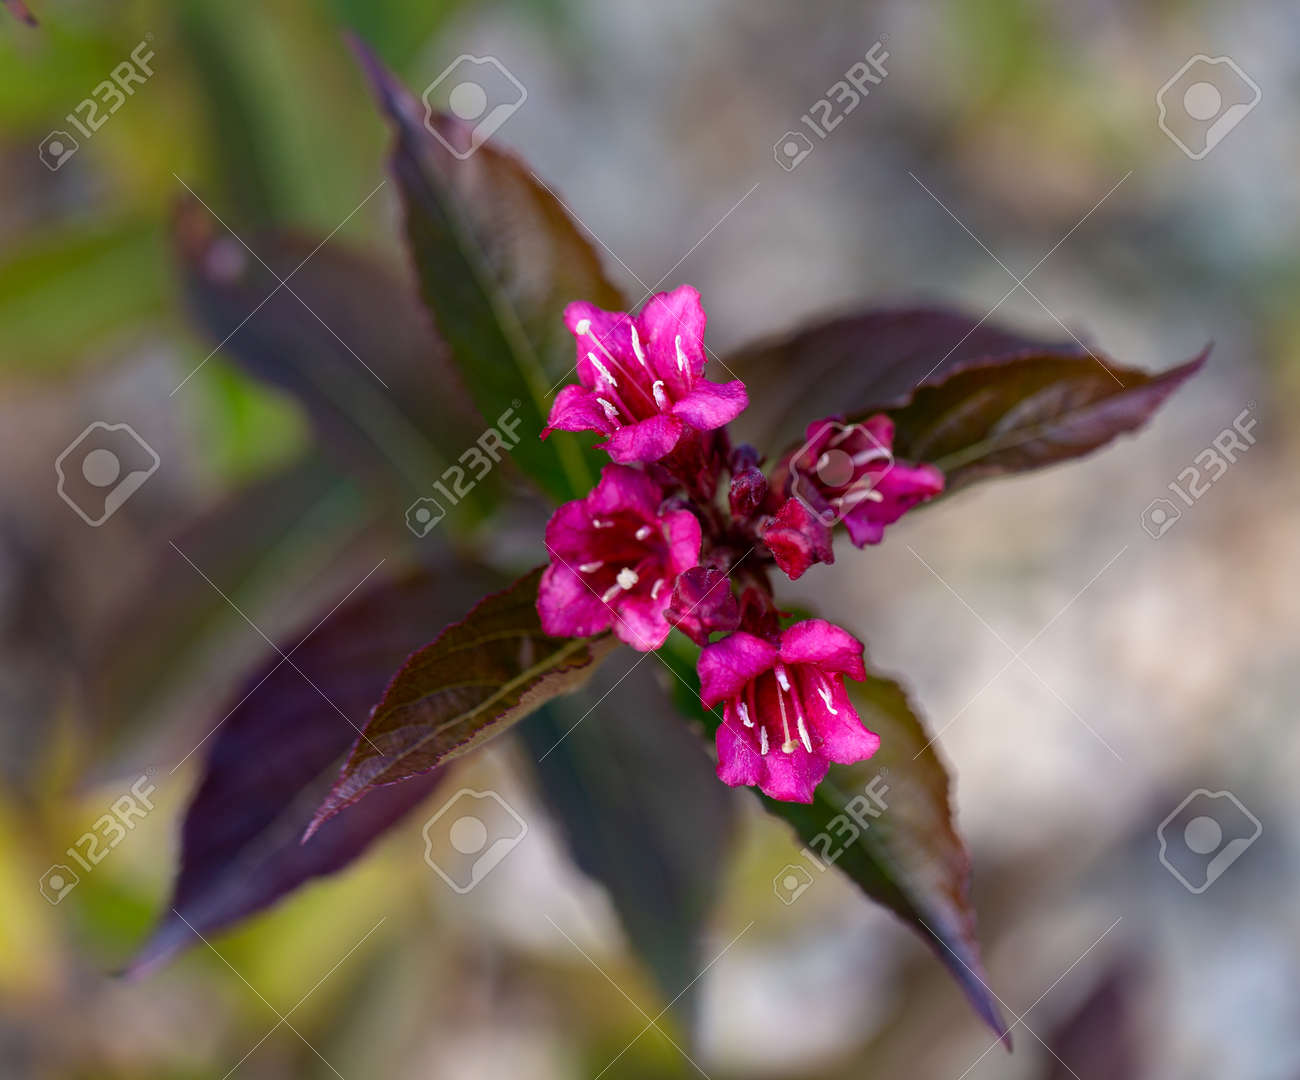 Wine And Roses Weigela Branch With Purple Leaves And Pink Flowers Stock Photo Picture And Royalty Free Image Image 141887427